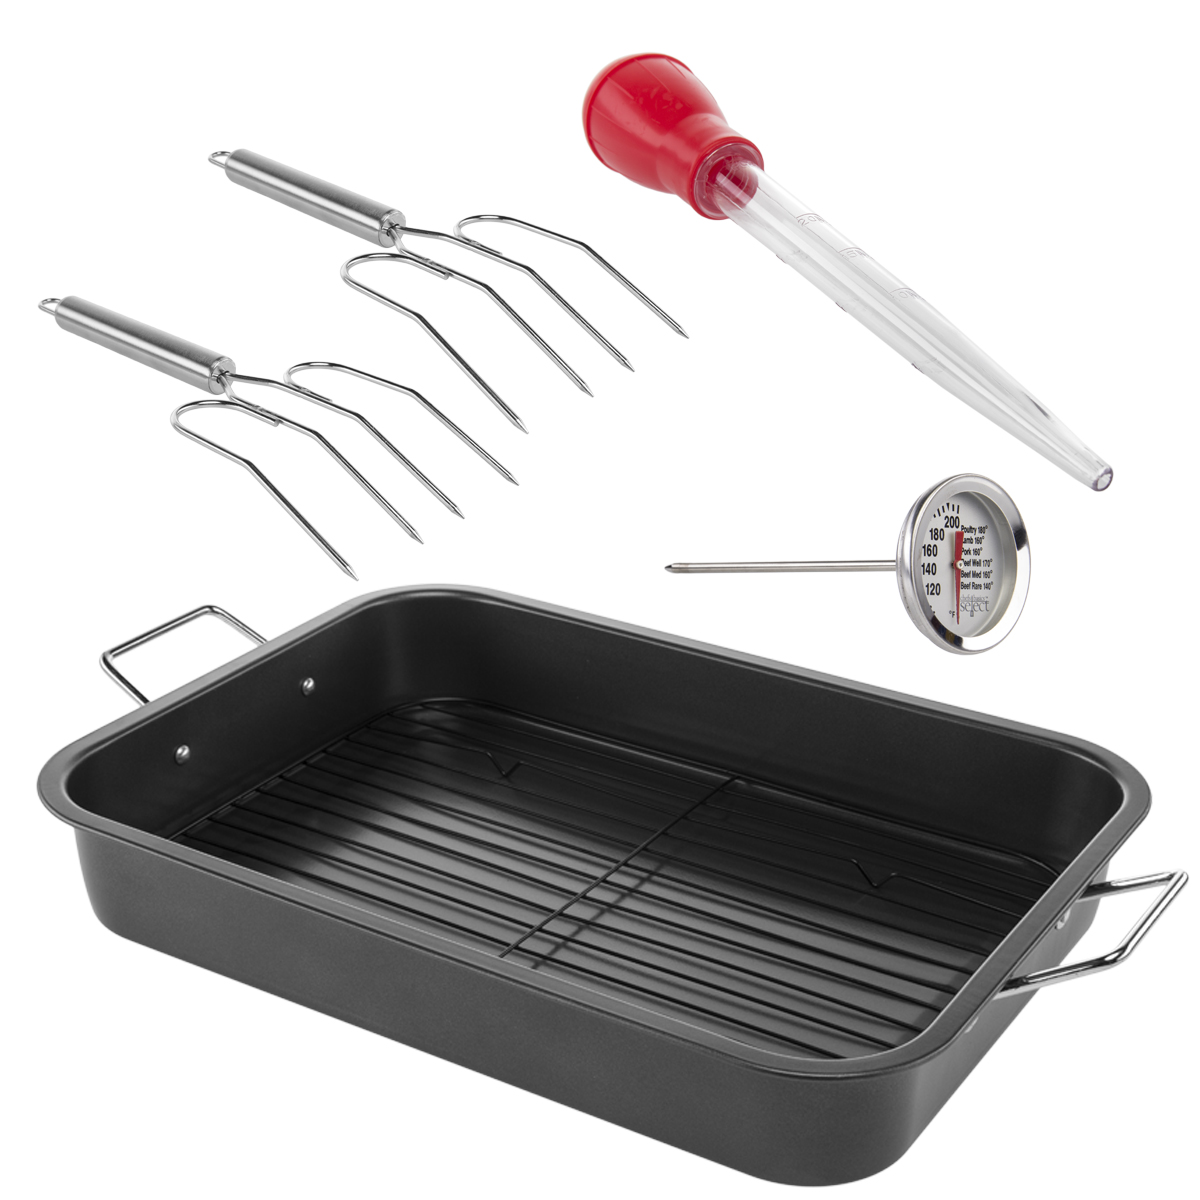 6pc Chefs Basics Select Nonstick Roasting Pan Set With Rack, Baster, Lifter & Thermometer Bakeware Turkey Rack by Chefs Basics Select